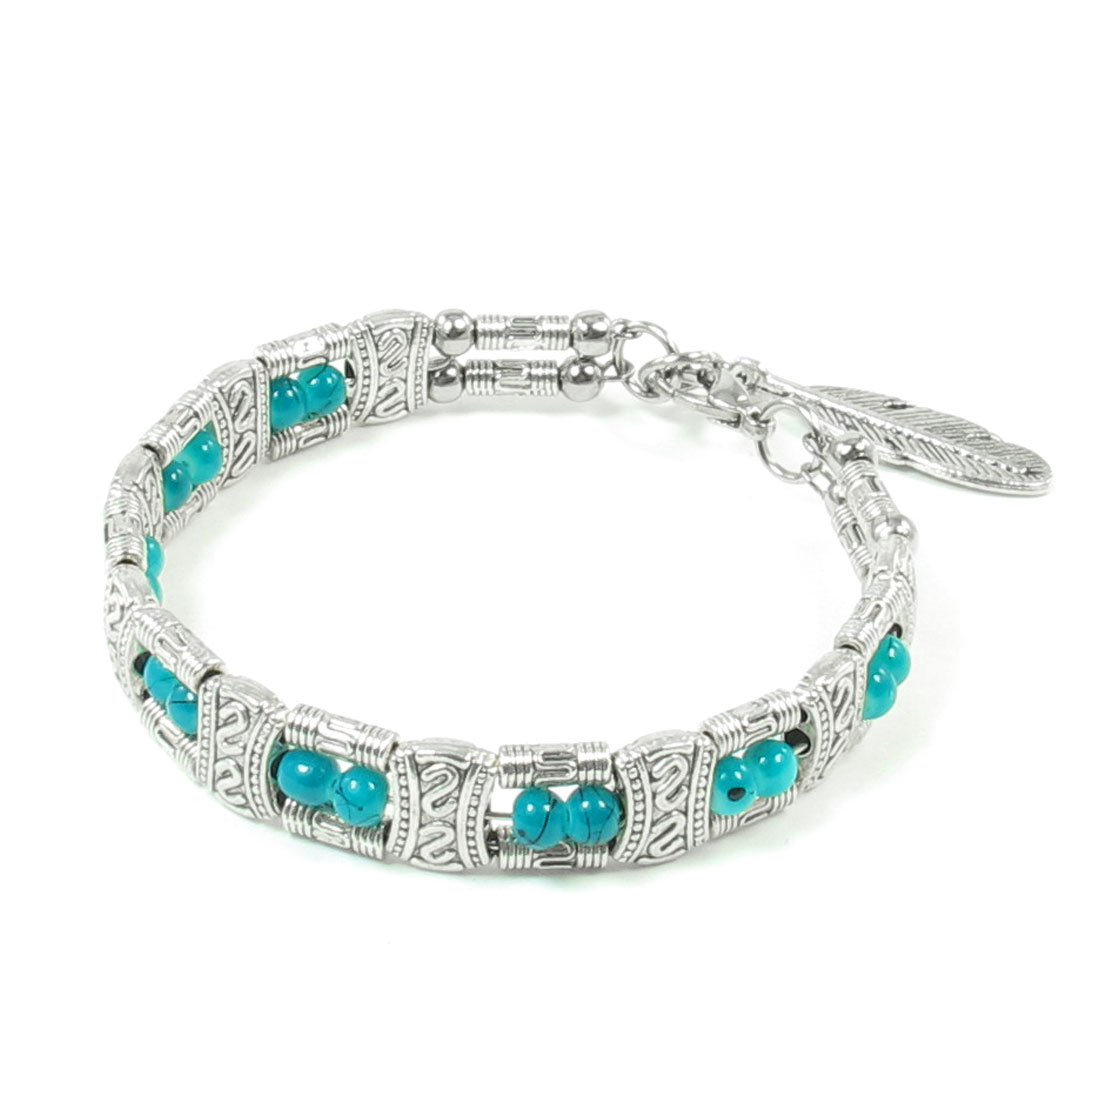 "Women 2.3"" Diameter Turquoise Silver Tone Small Beaded Inlaid National Bracelet"